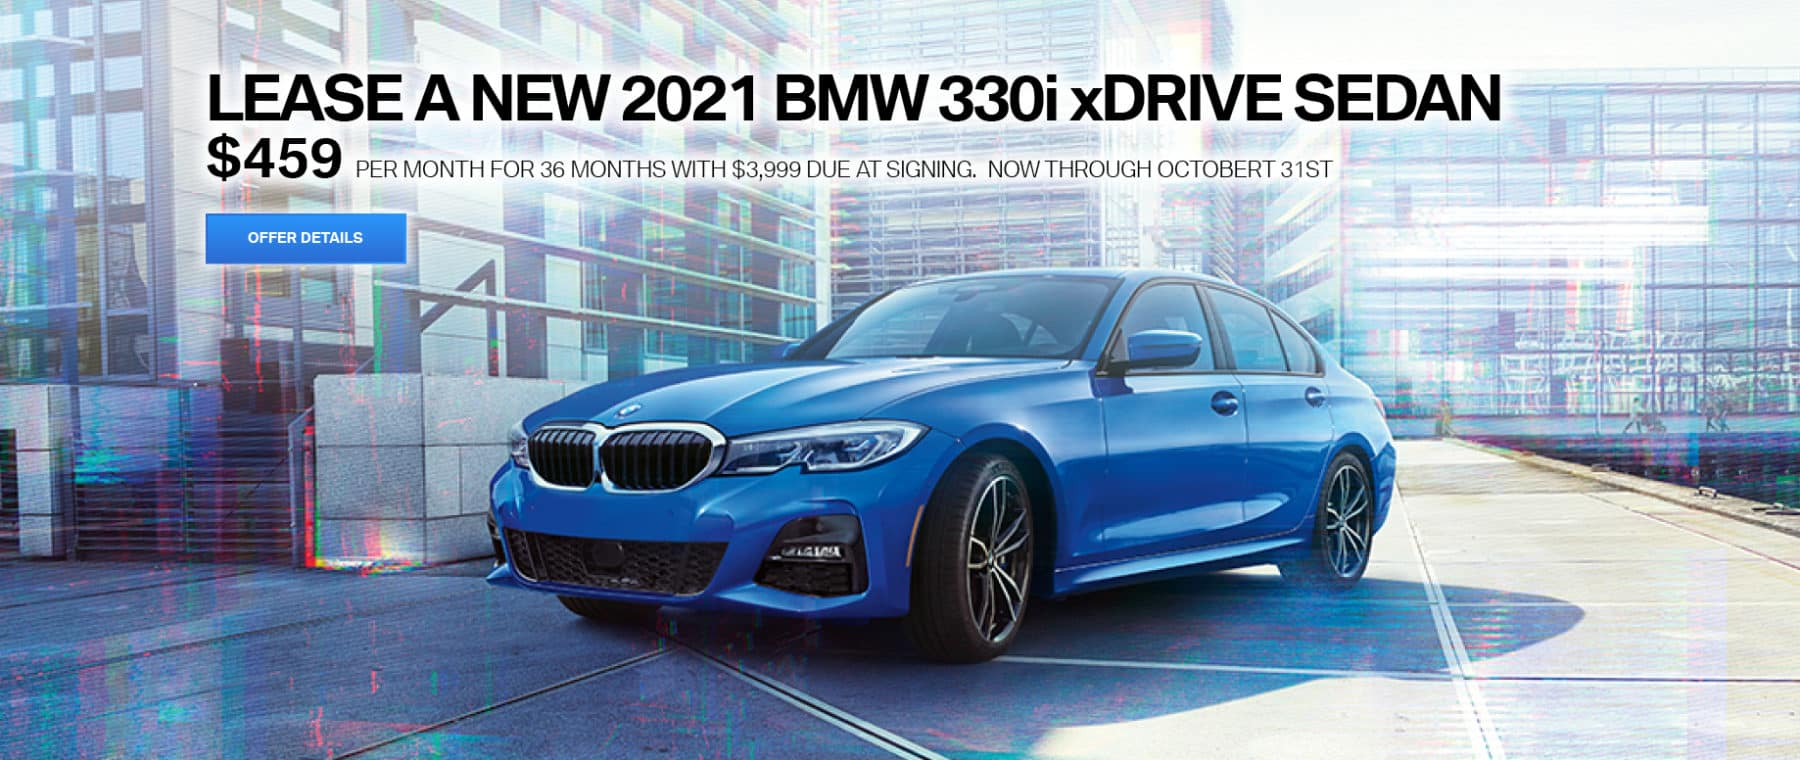 bmw of oyster bay bmw dealer in oyster bay ny bmw of oyster bay bmw dealer in